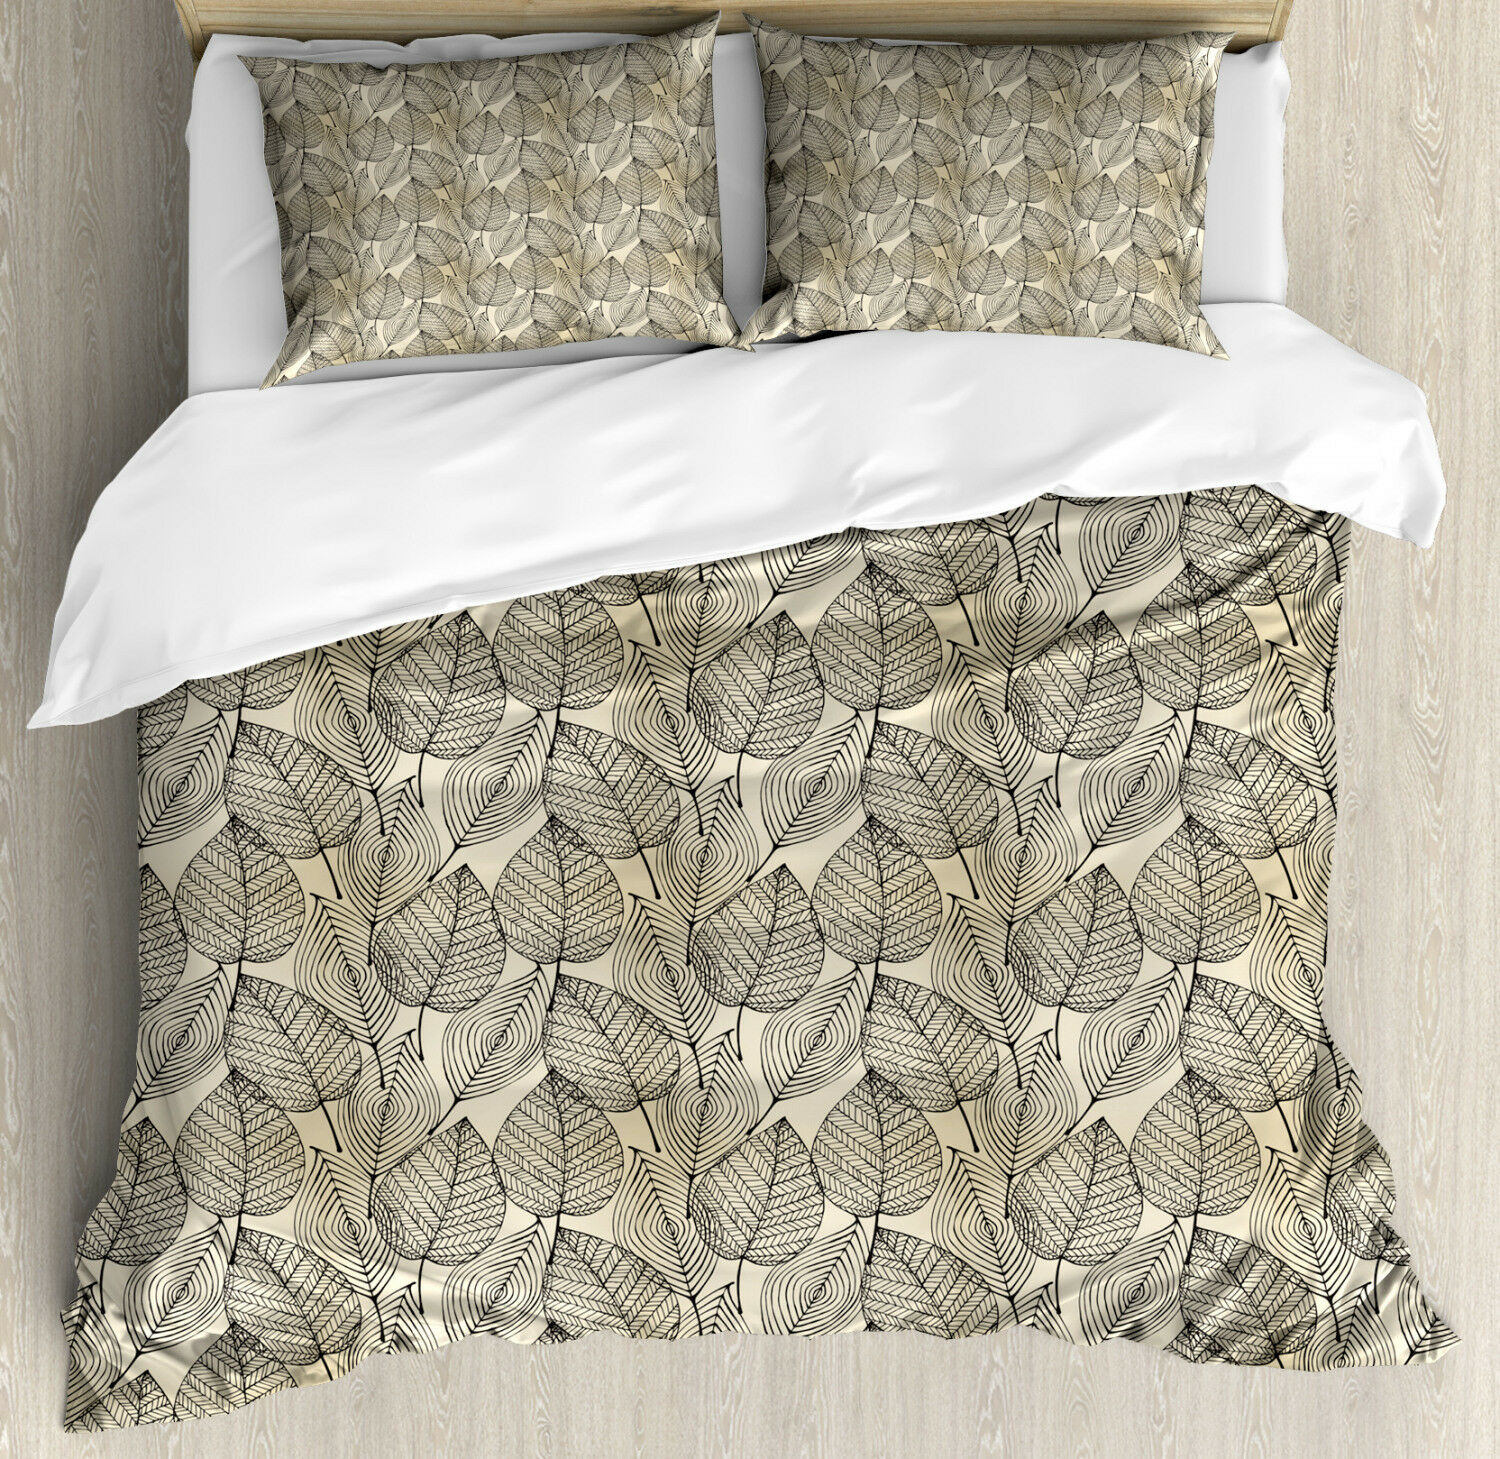 Beige Duvet Cover Set with Pillow Shams Autumn Leaves Pattern Print